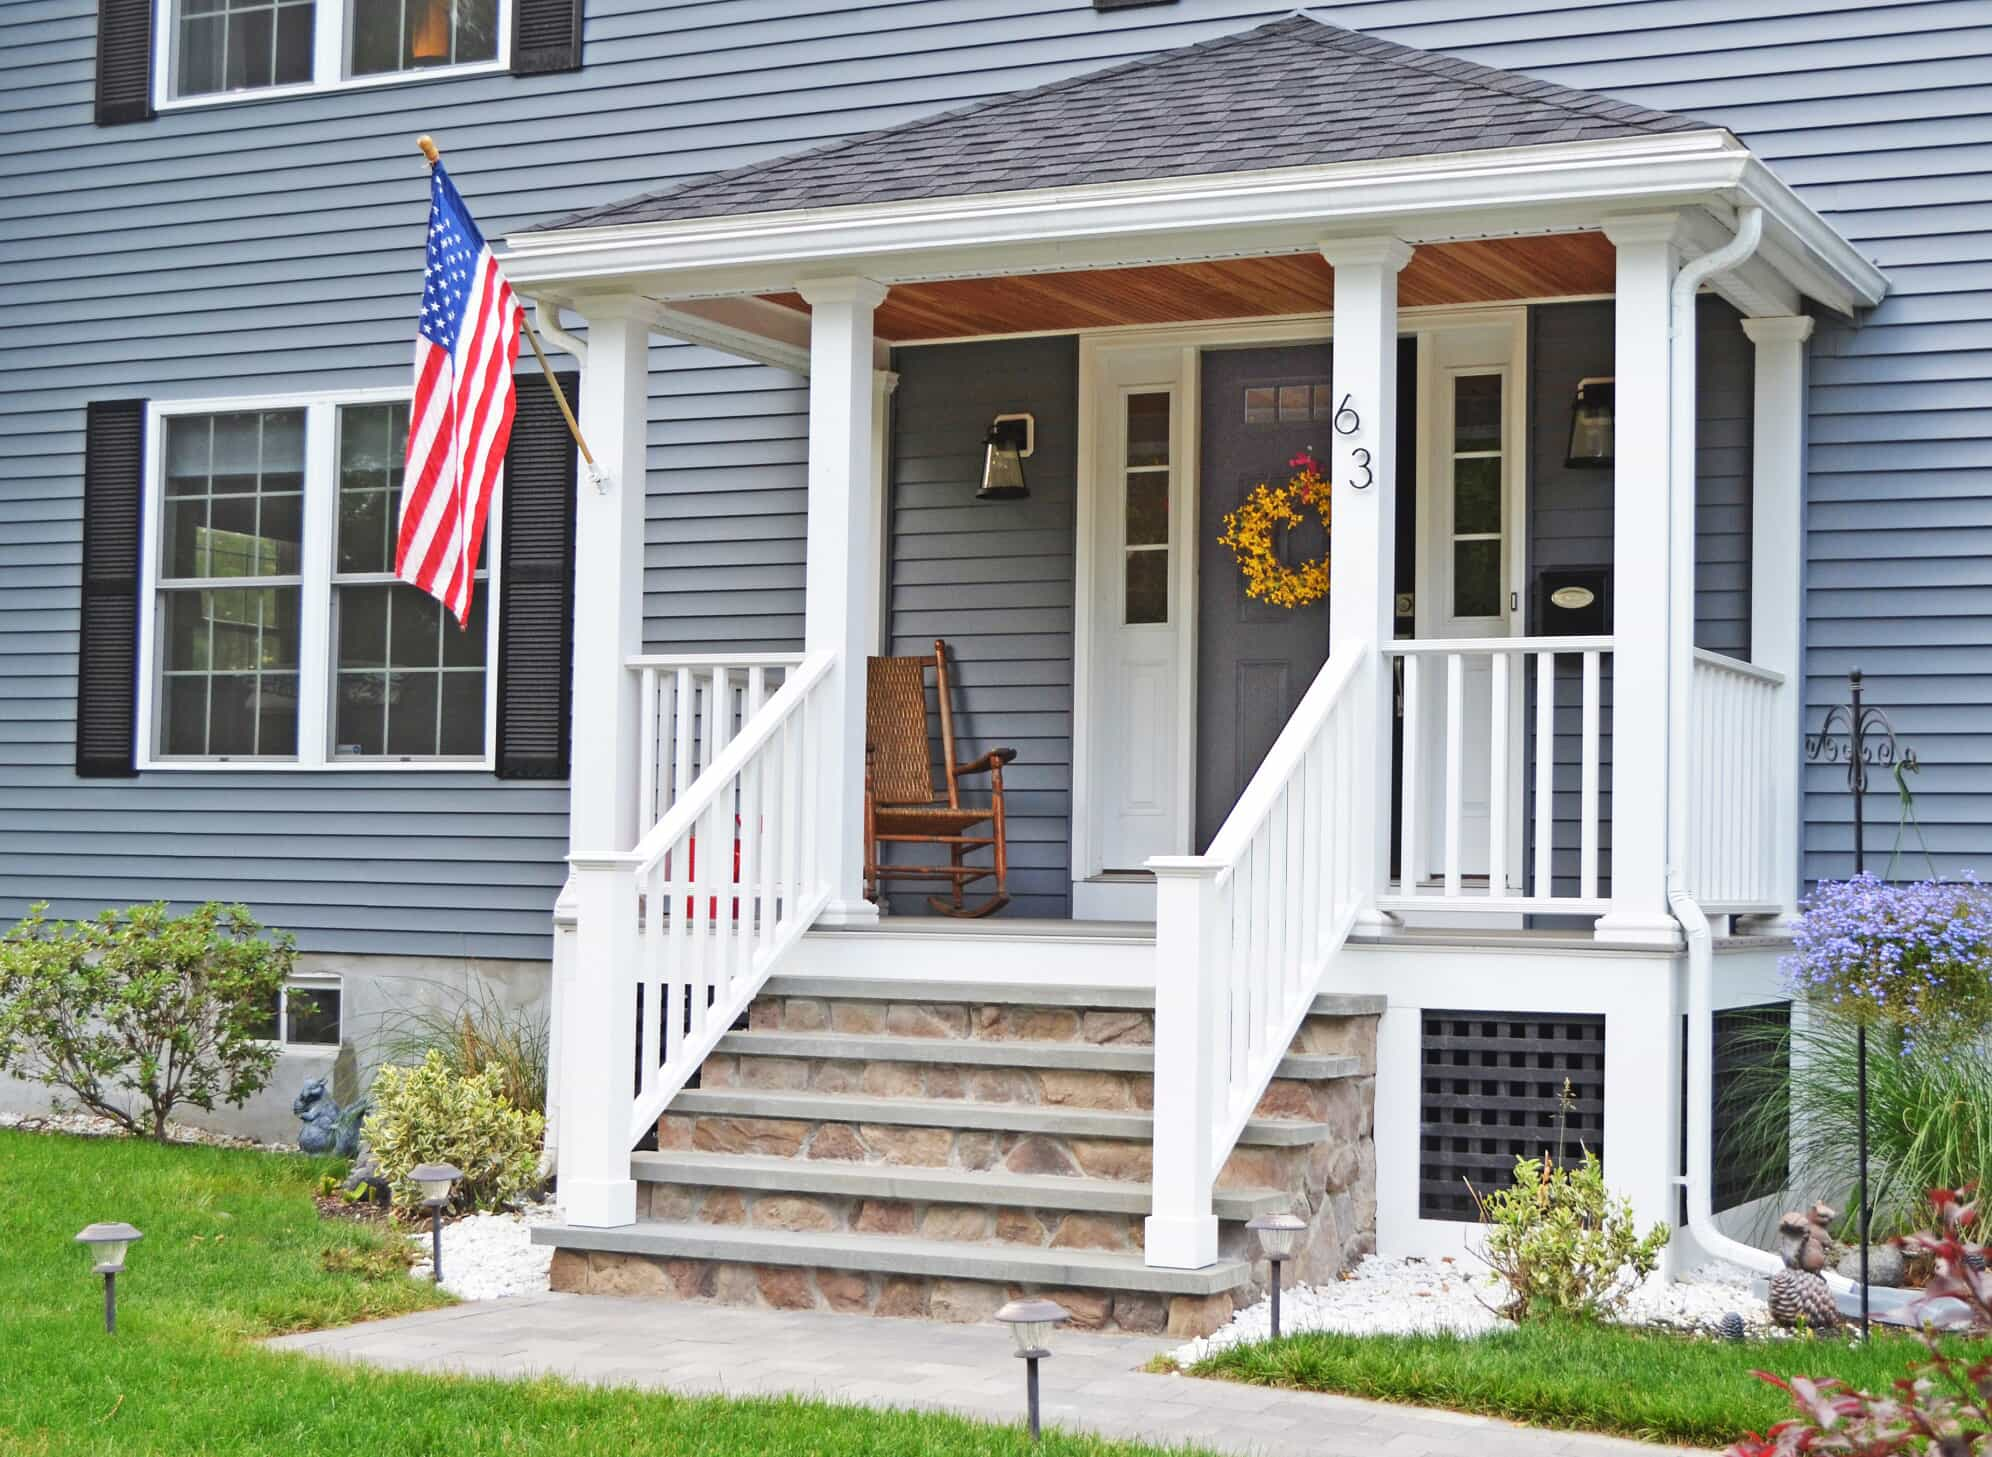 porch on house